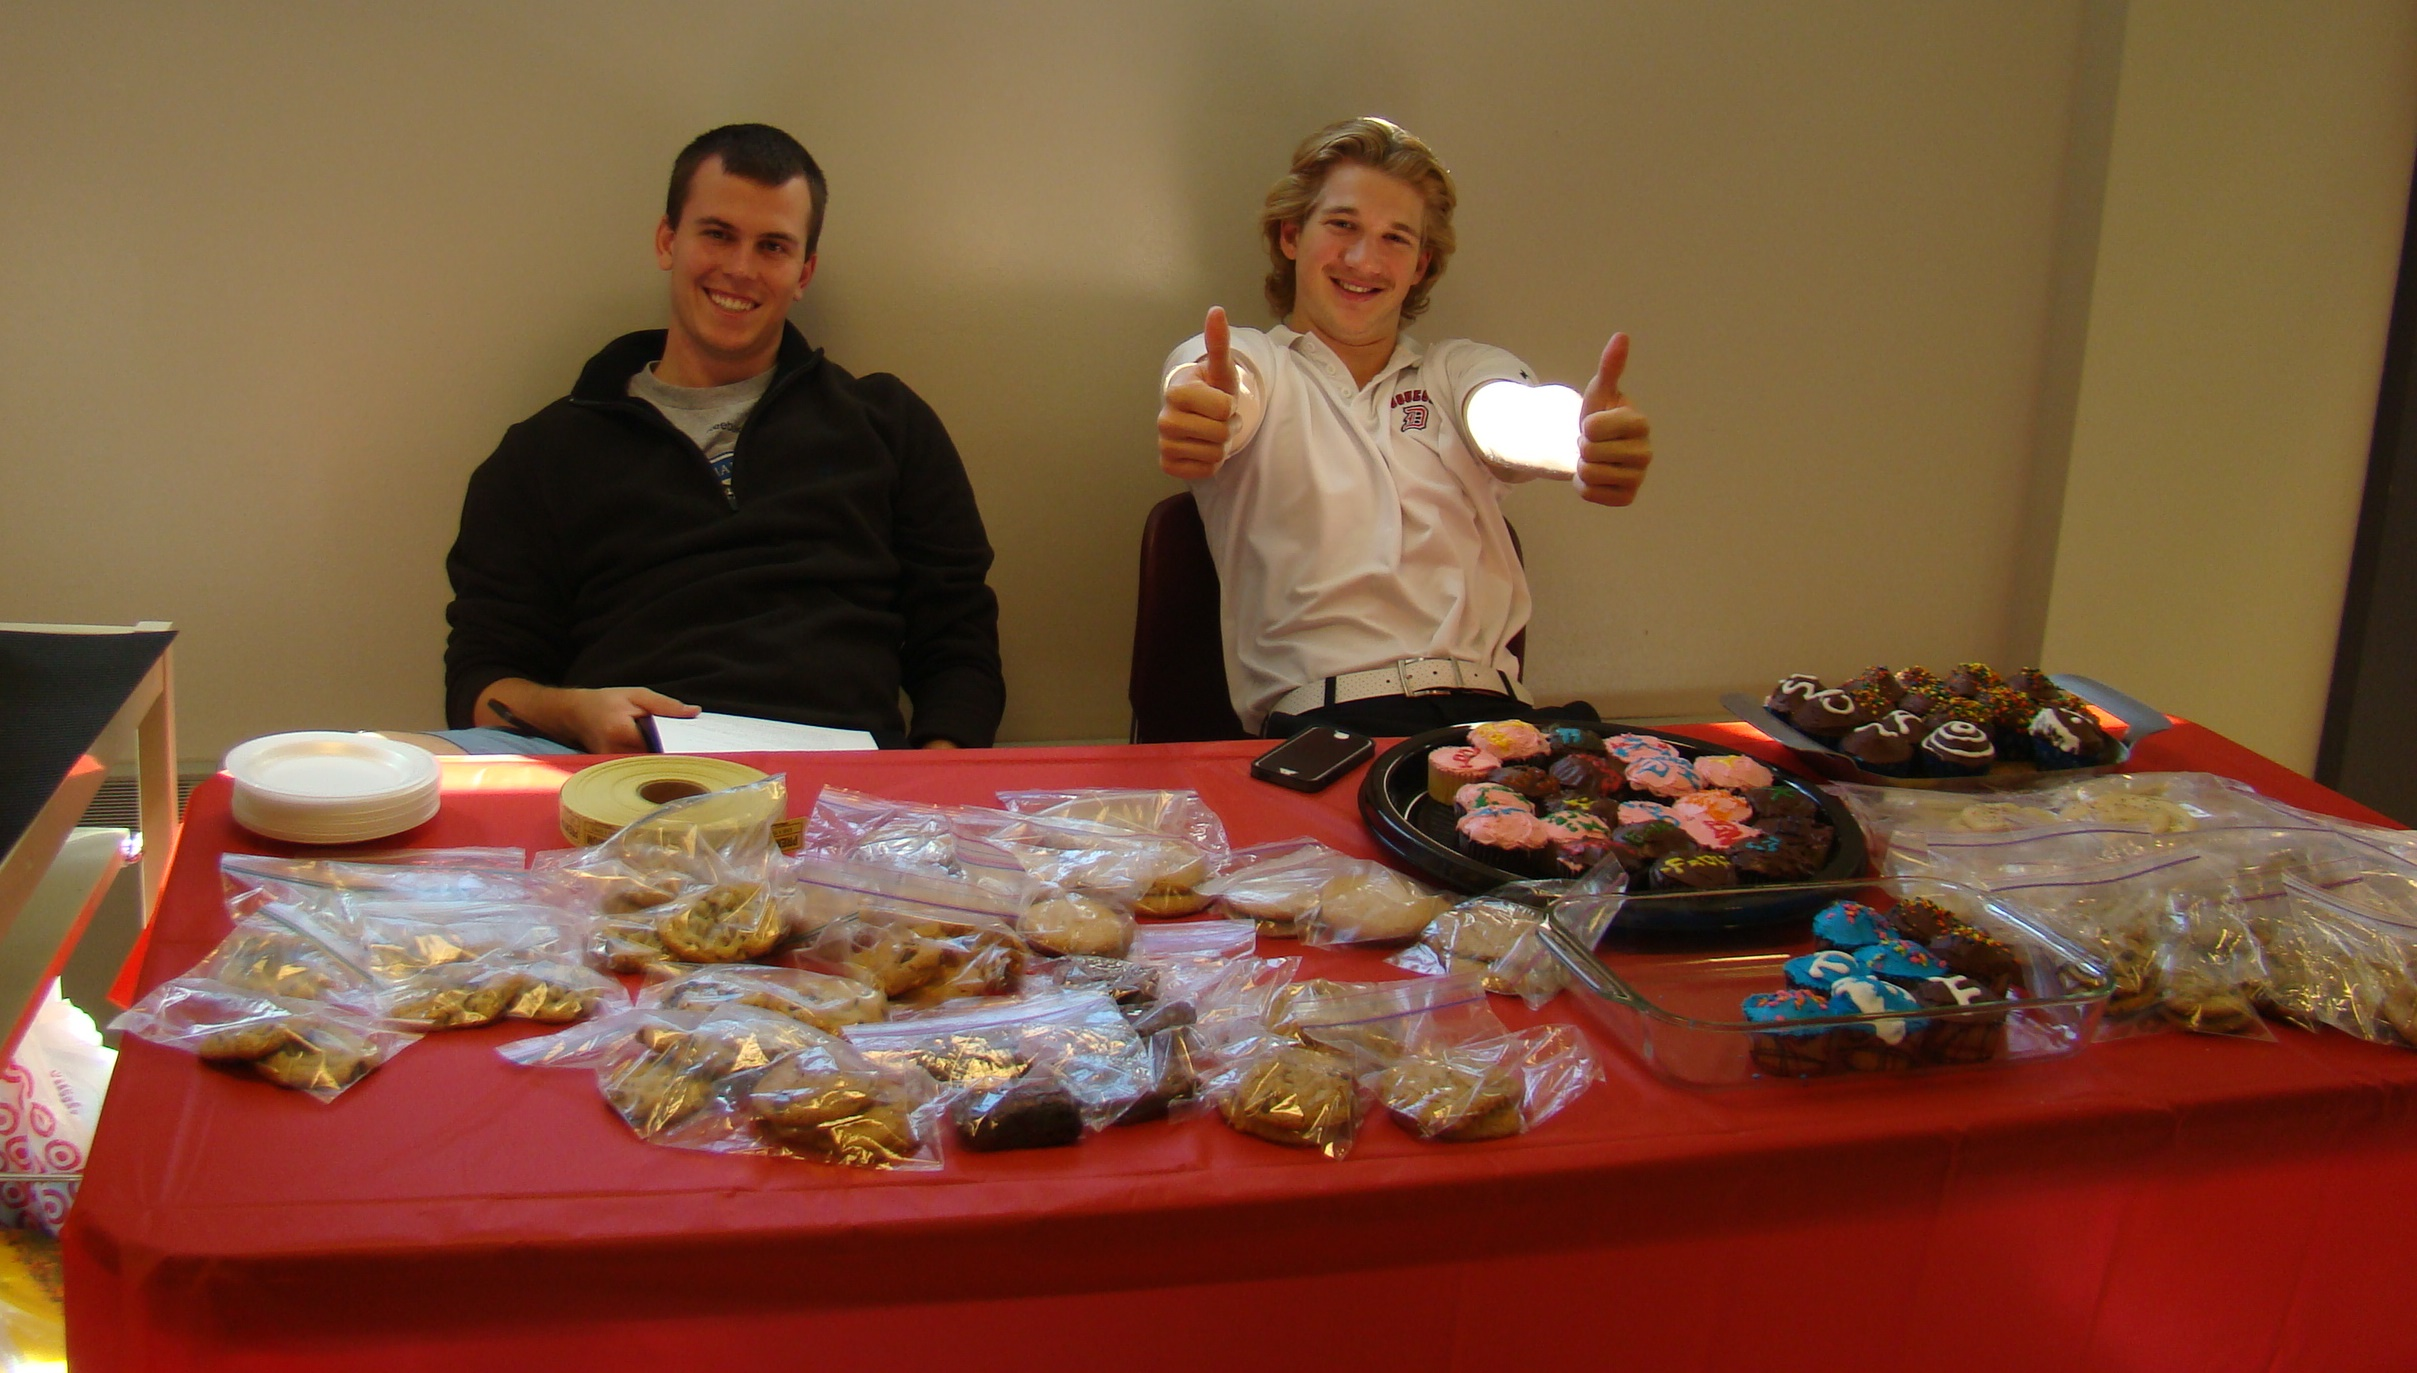 Fall 2013 Bake Sale